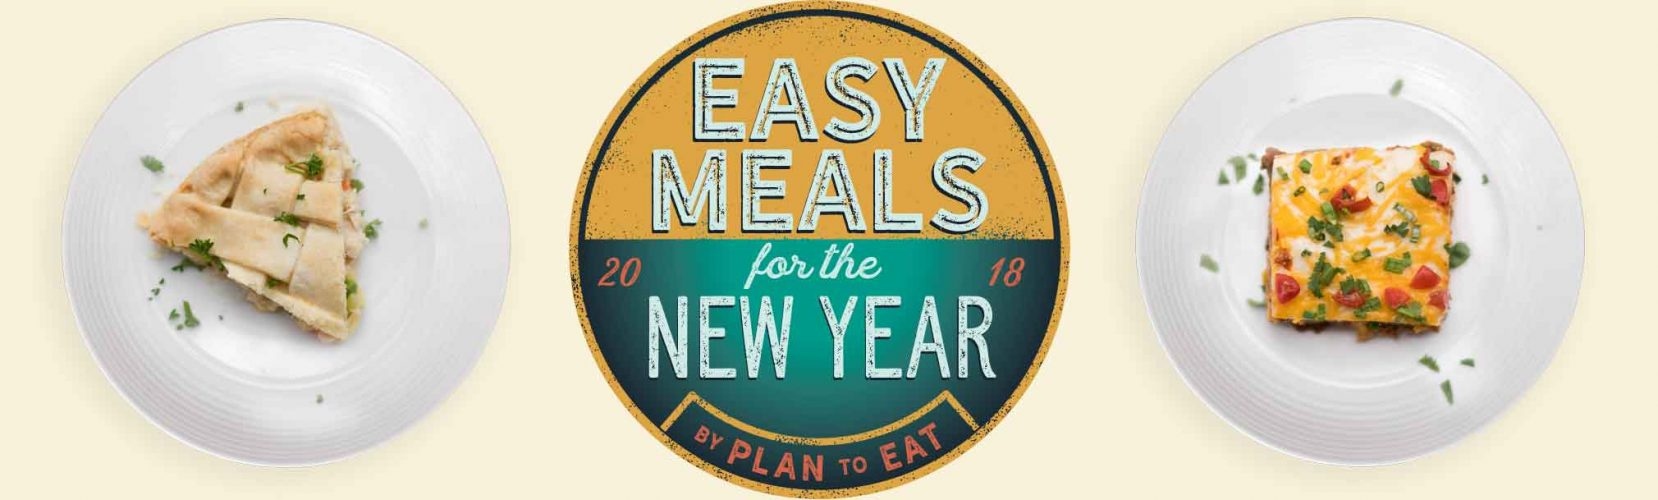 Plan to Eat, an online meal planning tool